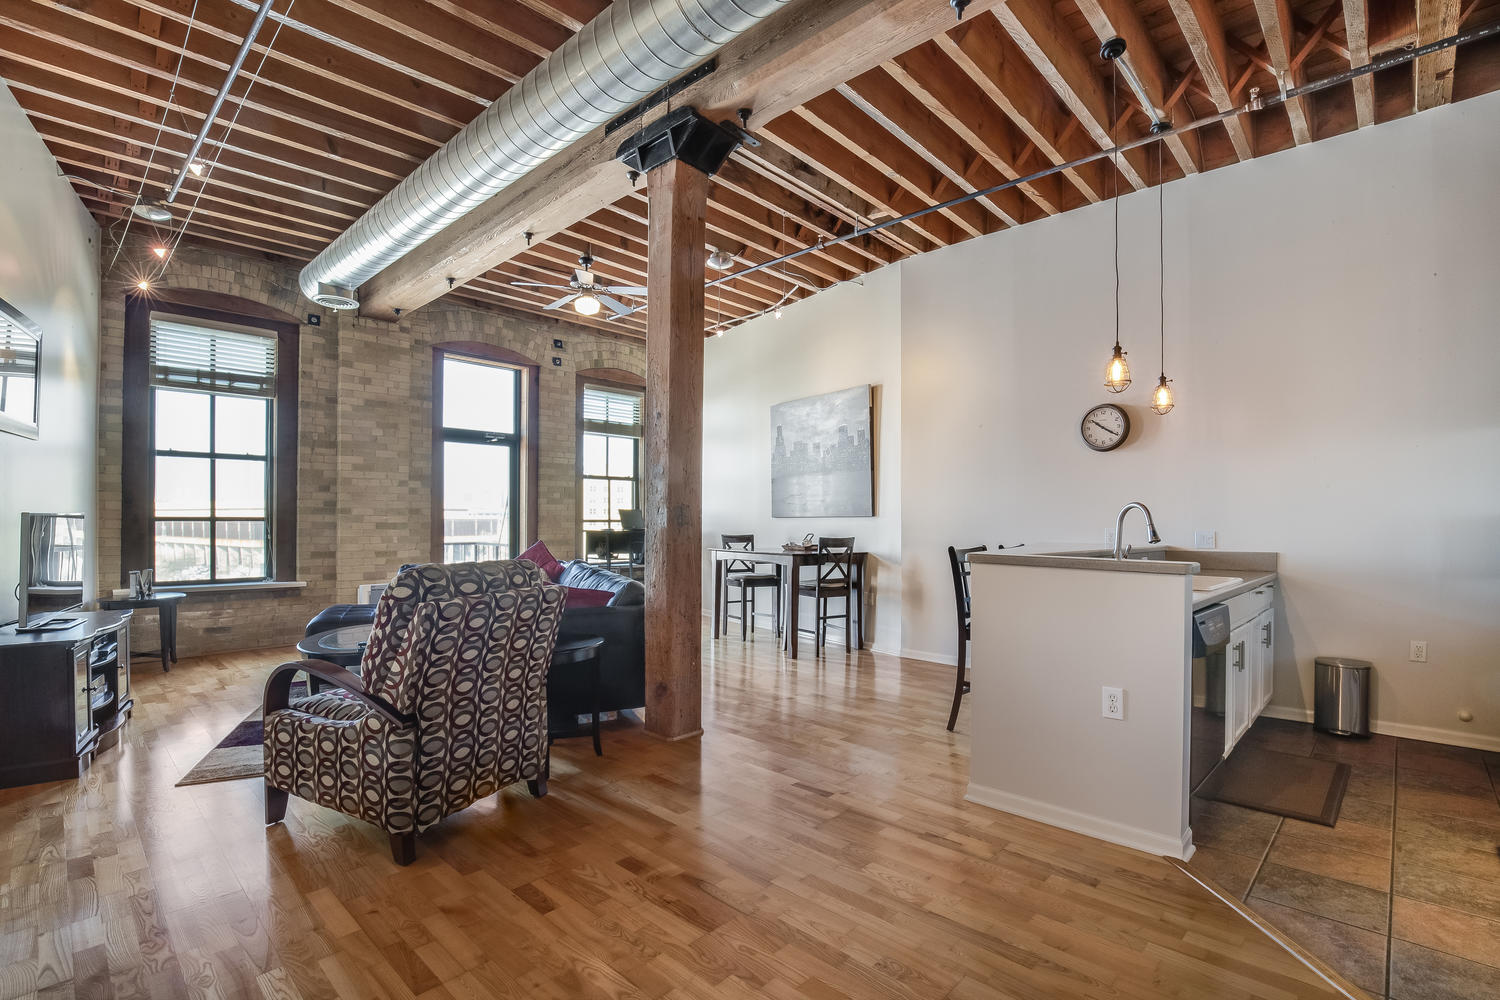 141 N. Water St. Photo from Corley Real Estate.